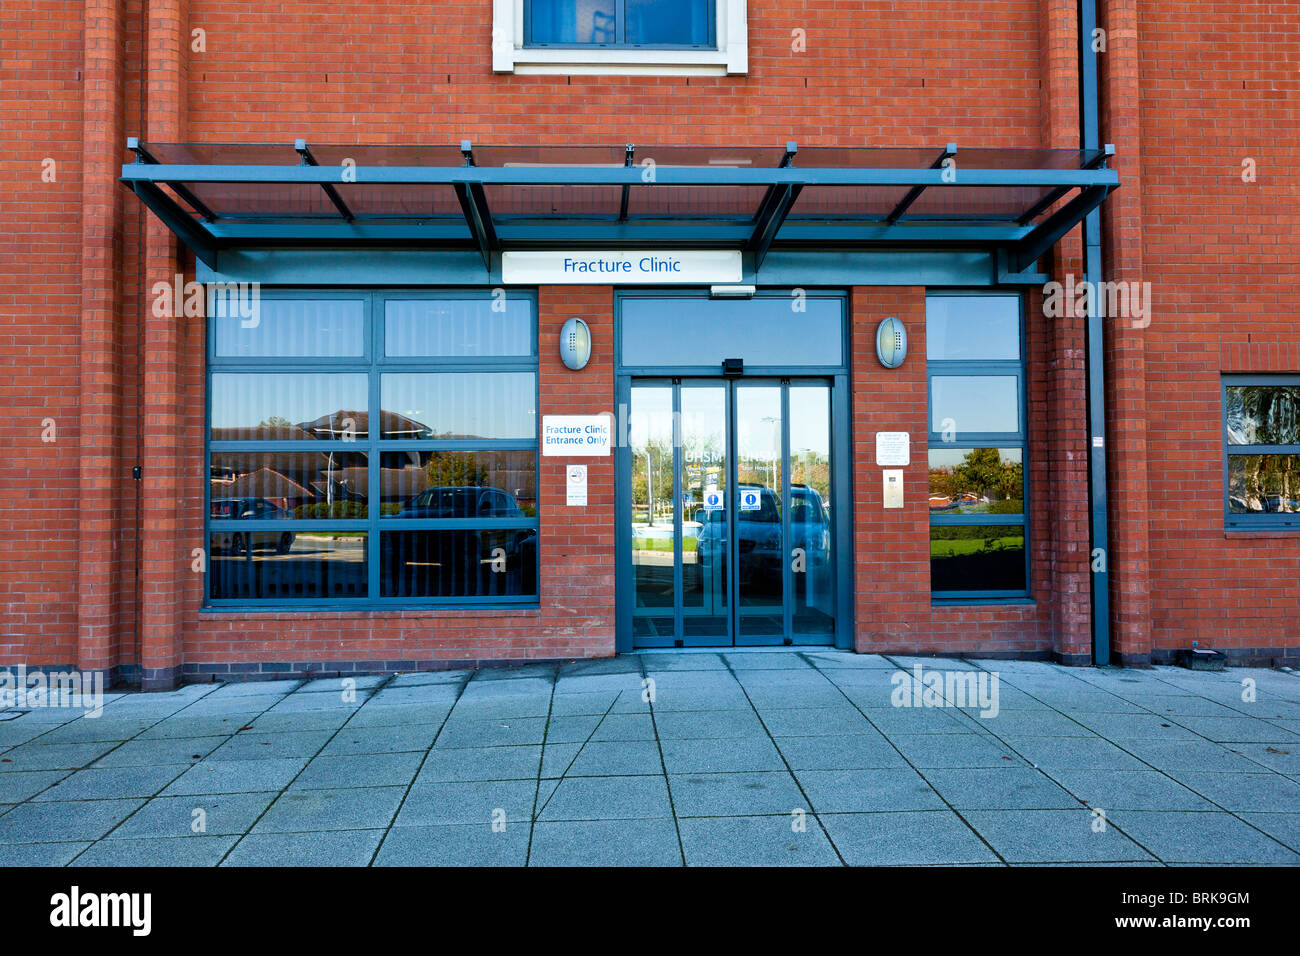 Fracture clinic entrance - Stock Image